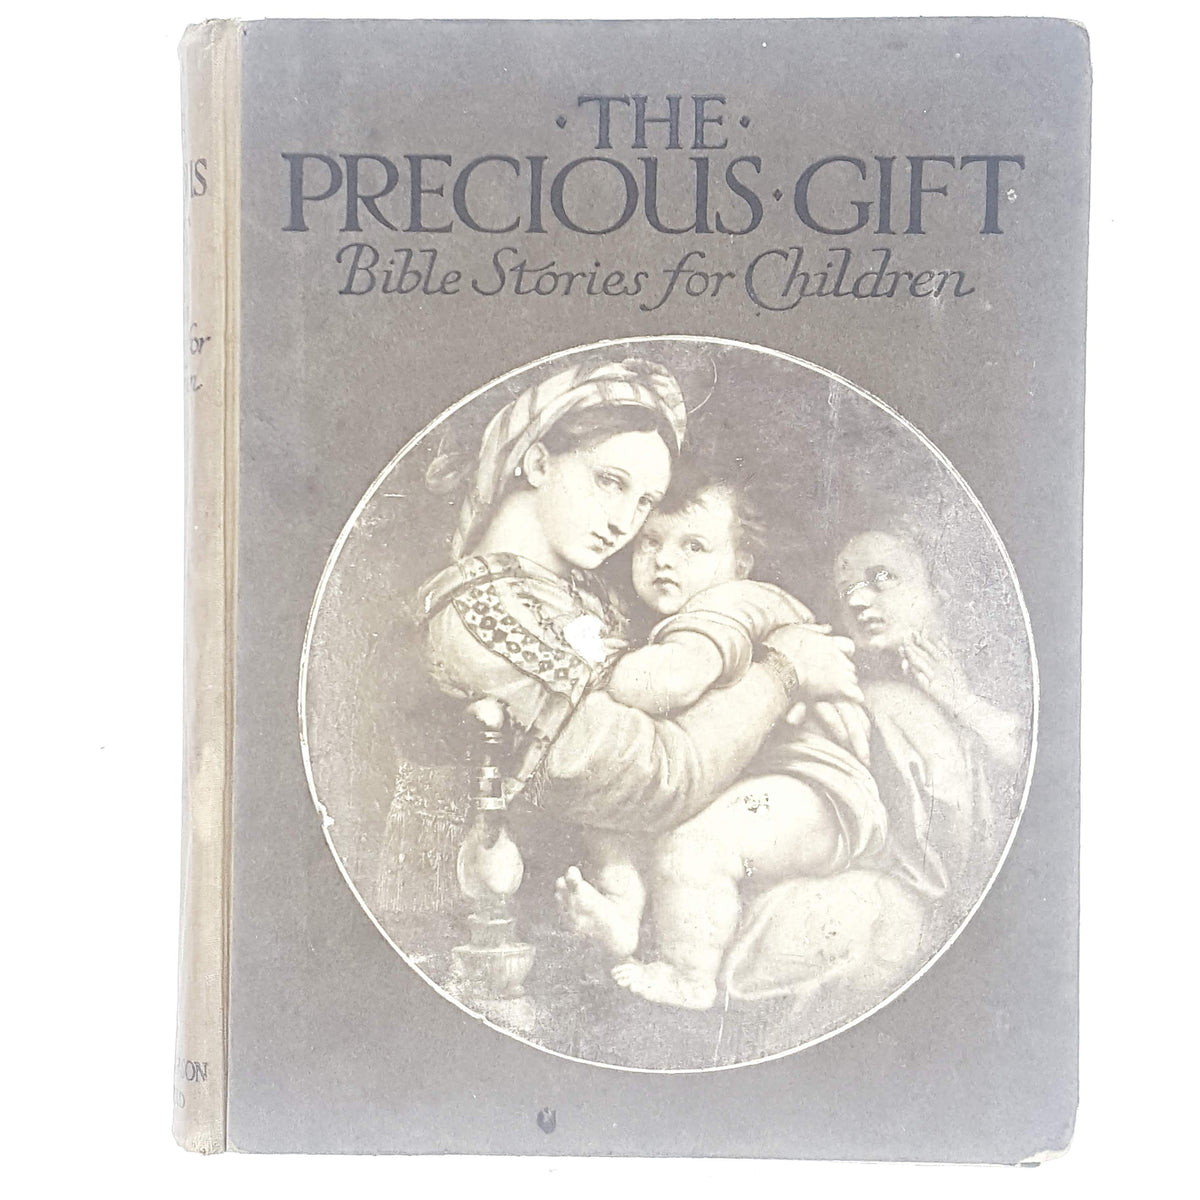 The Precious Gift: Bible Stories for Children